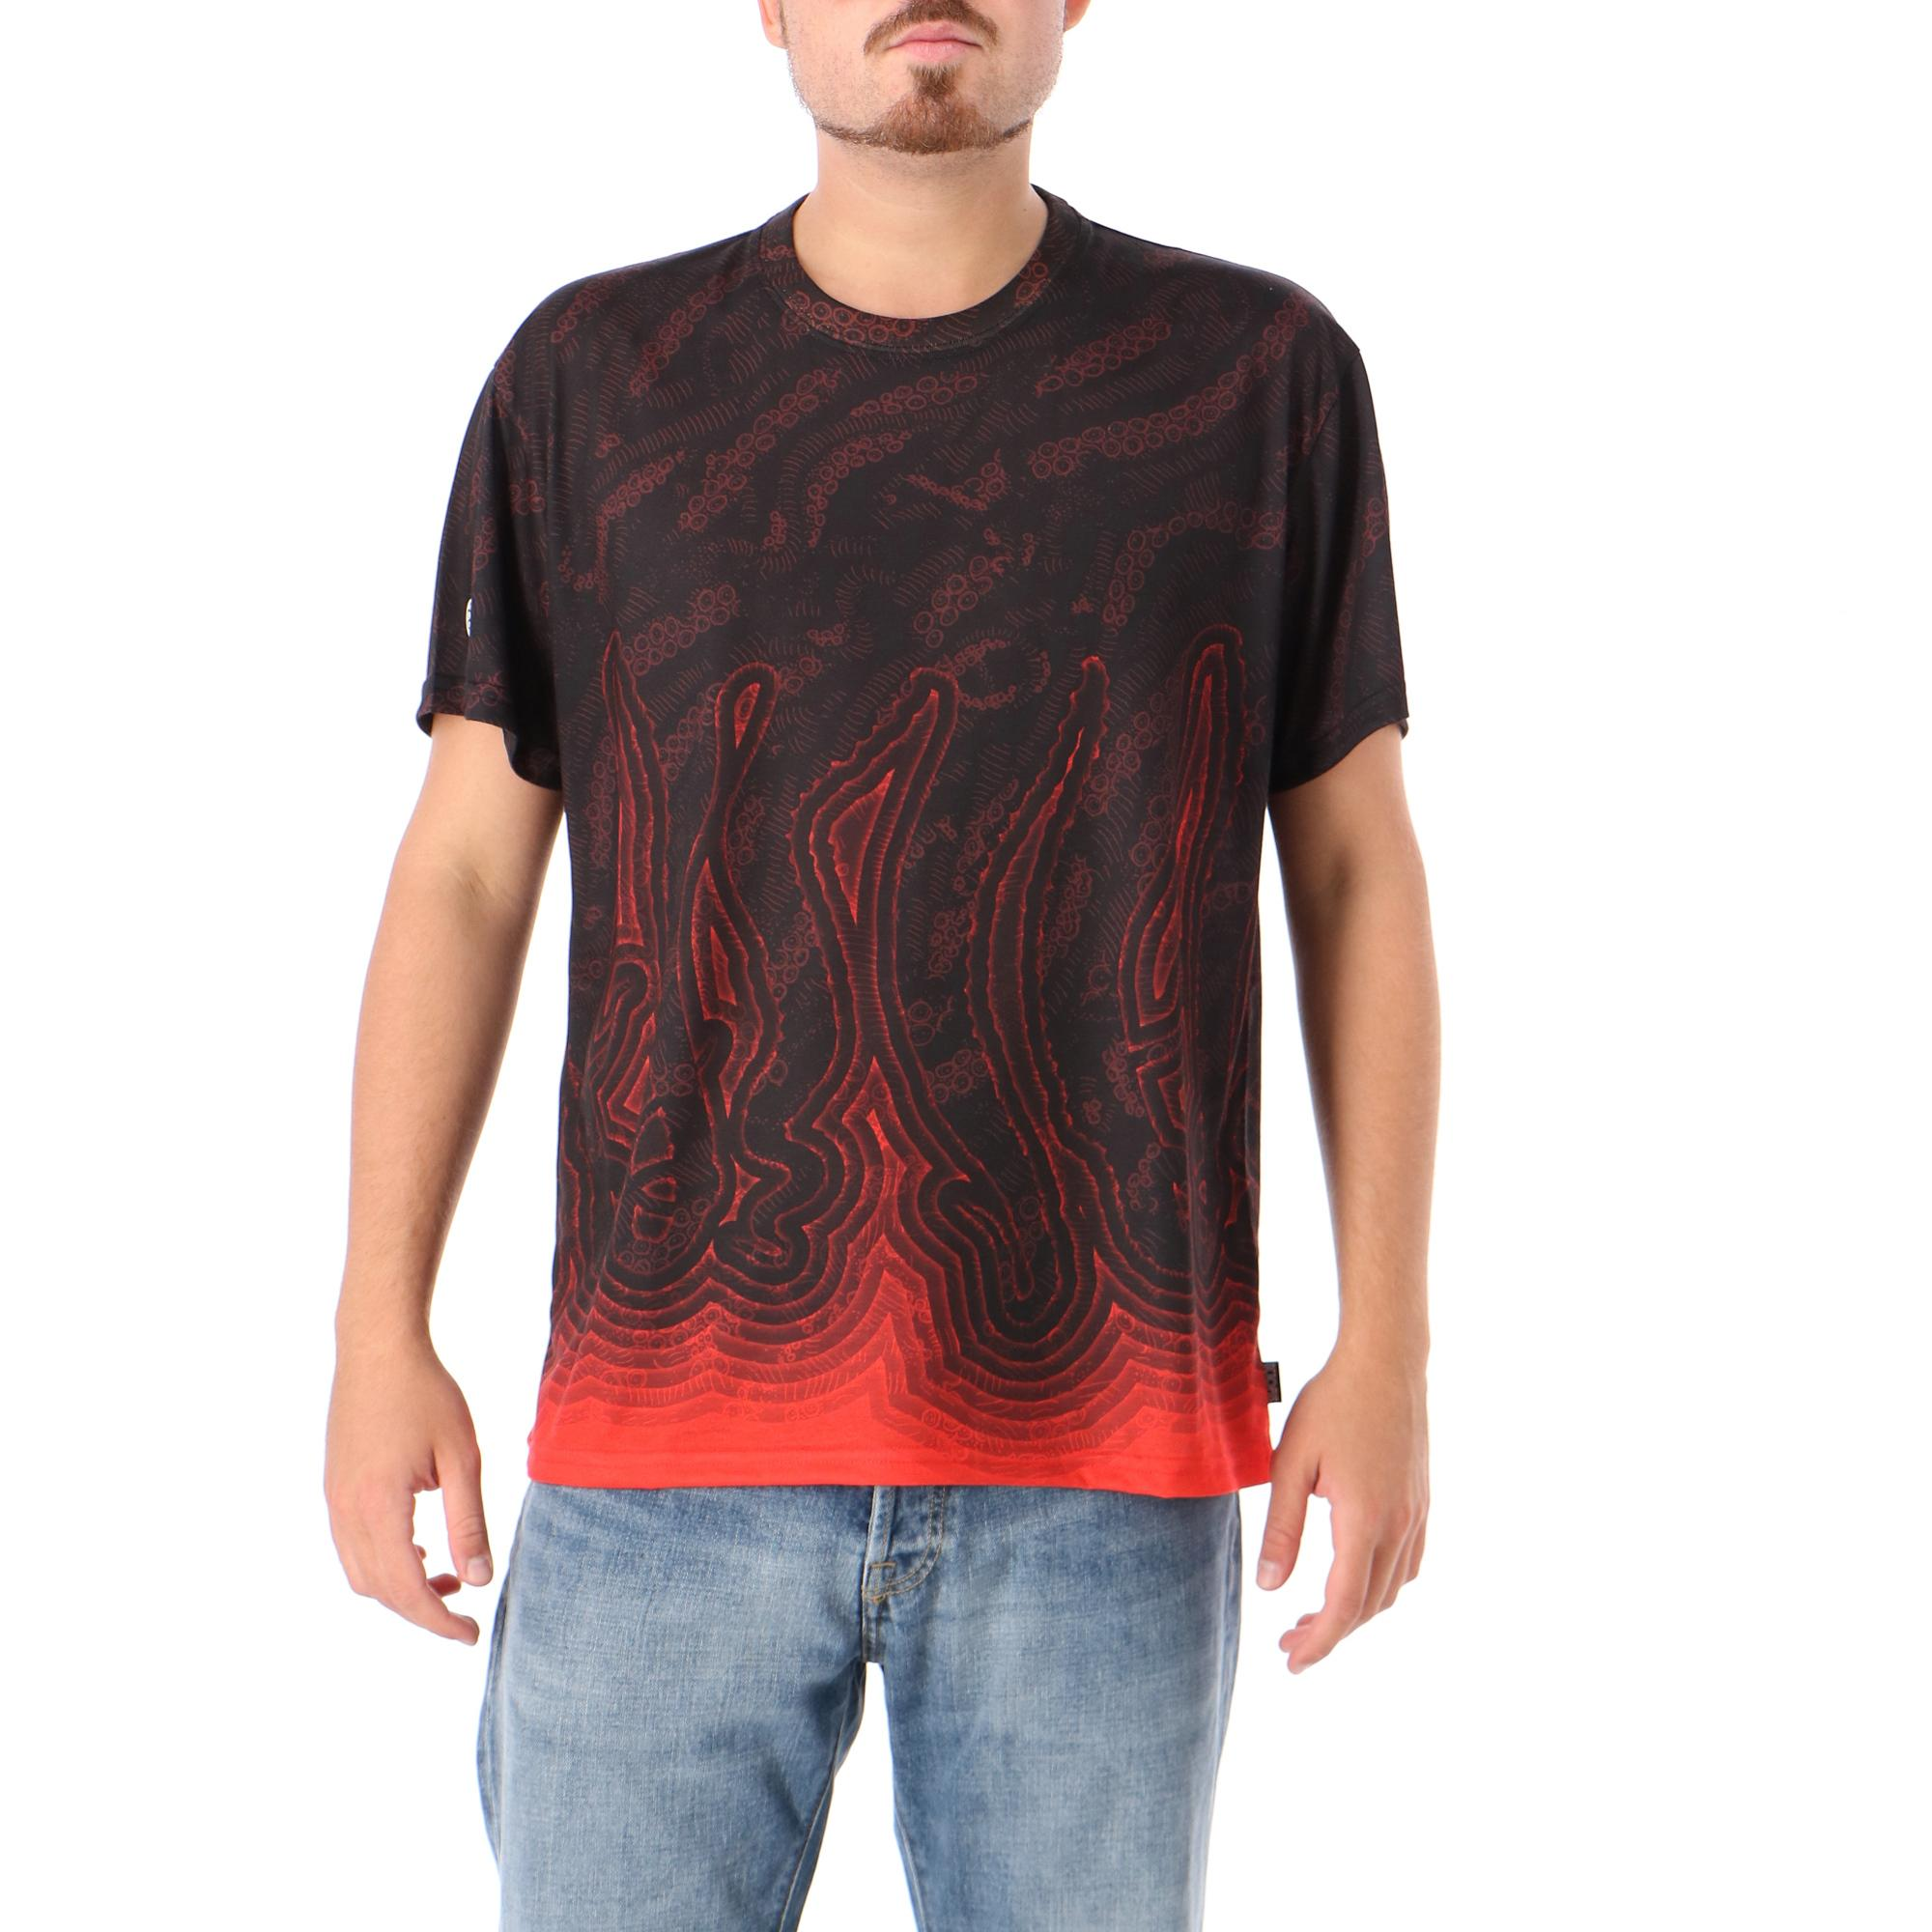 Octopus Abysss Tee ABYSS